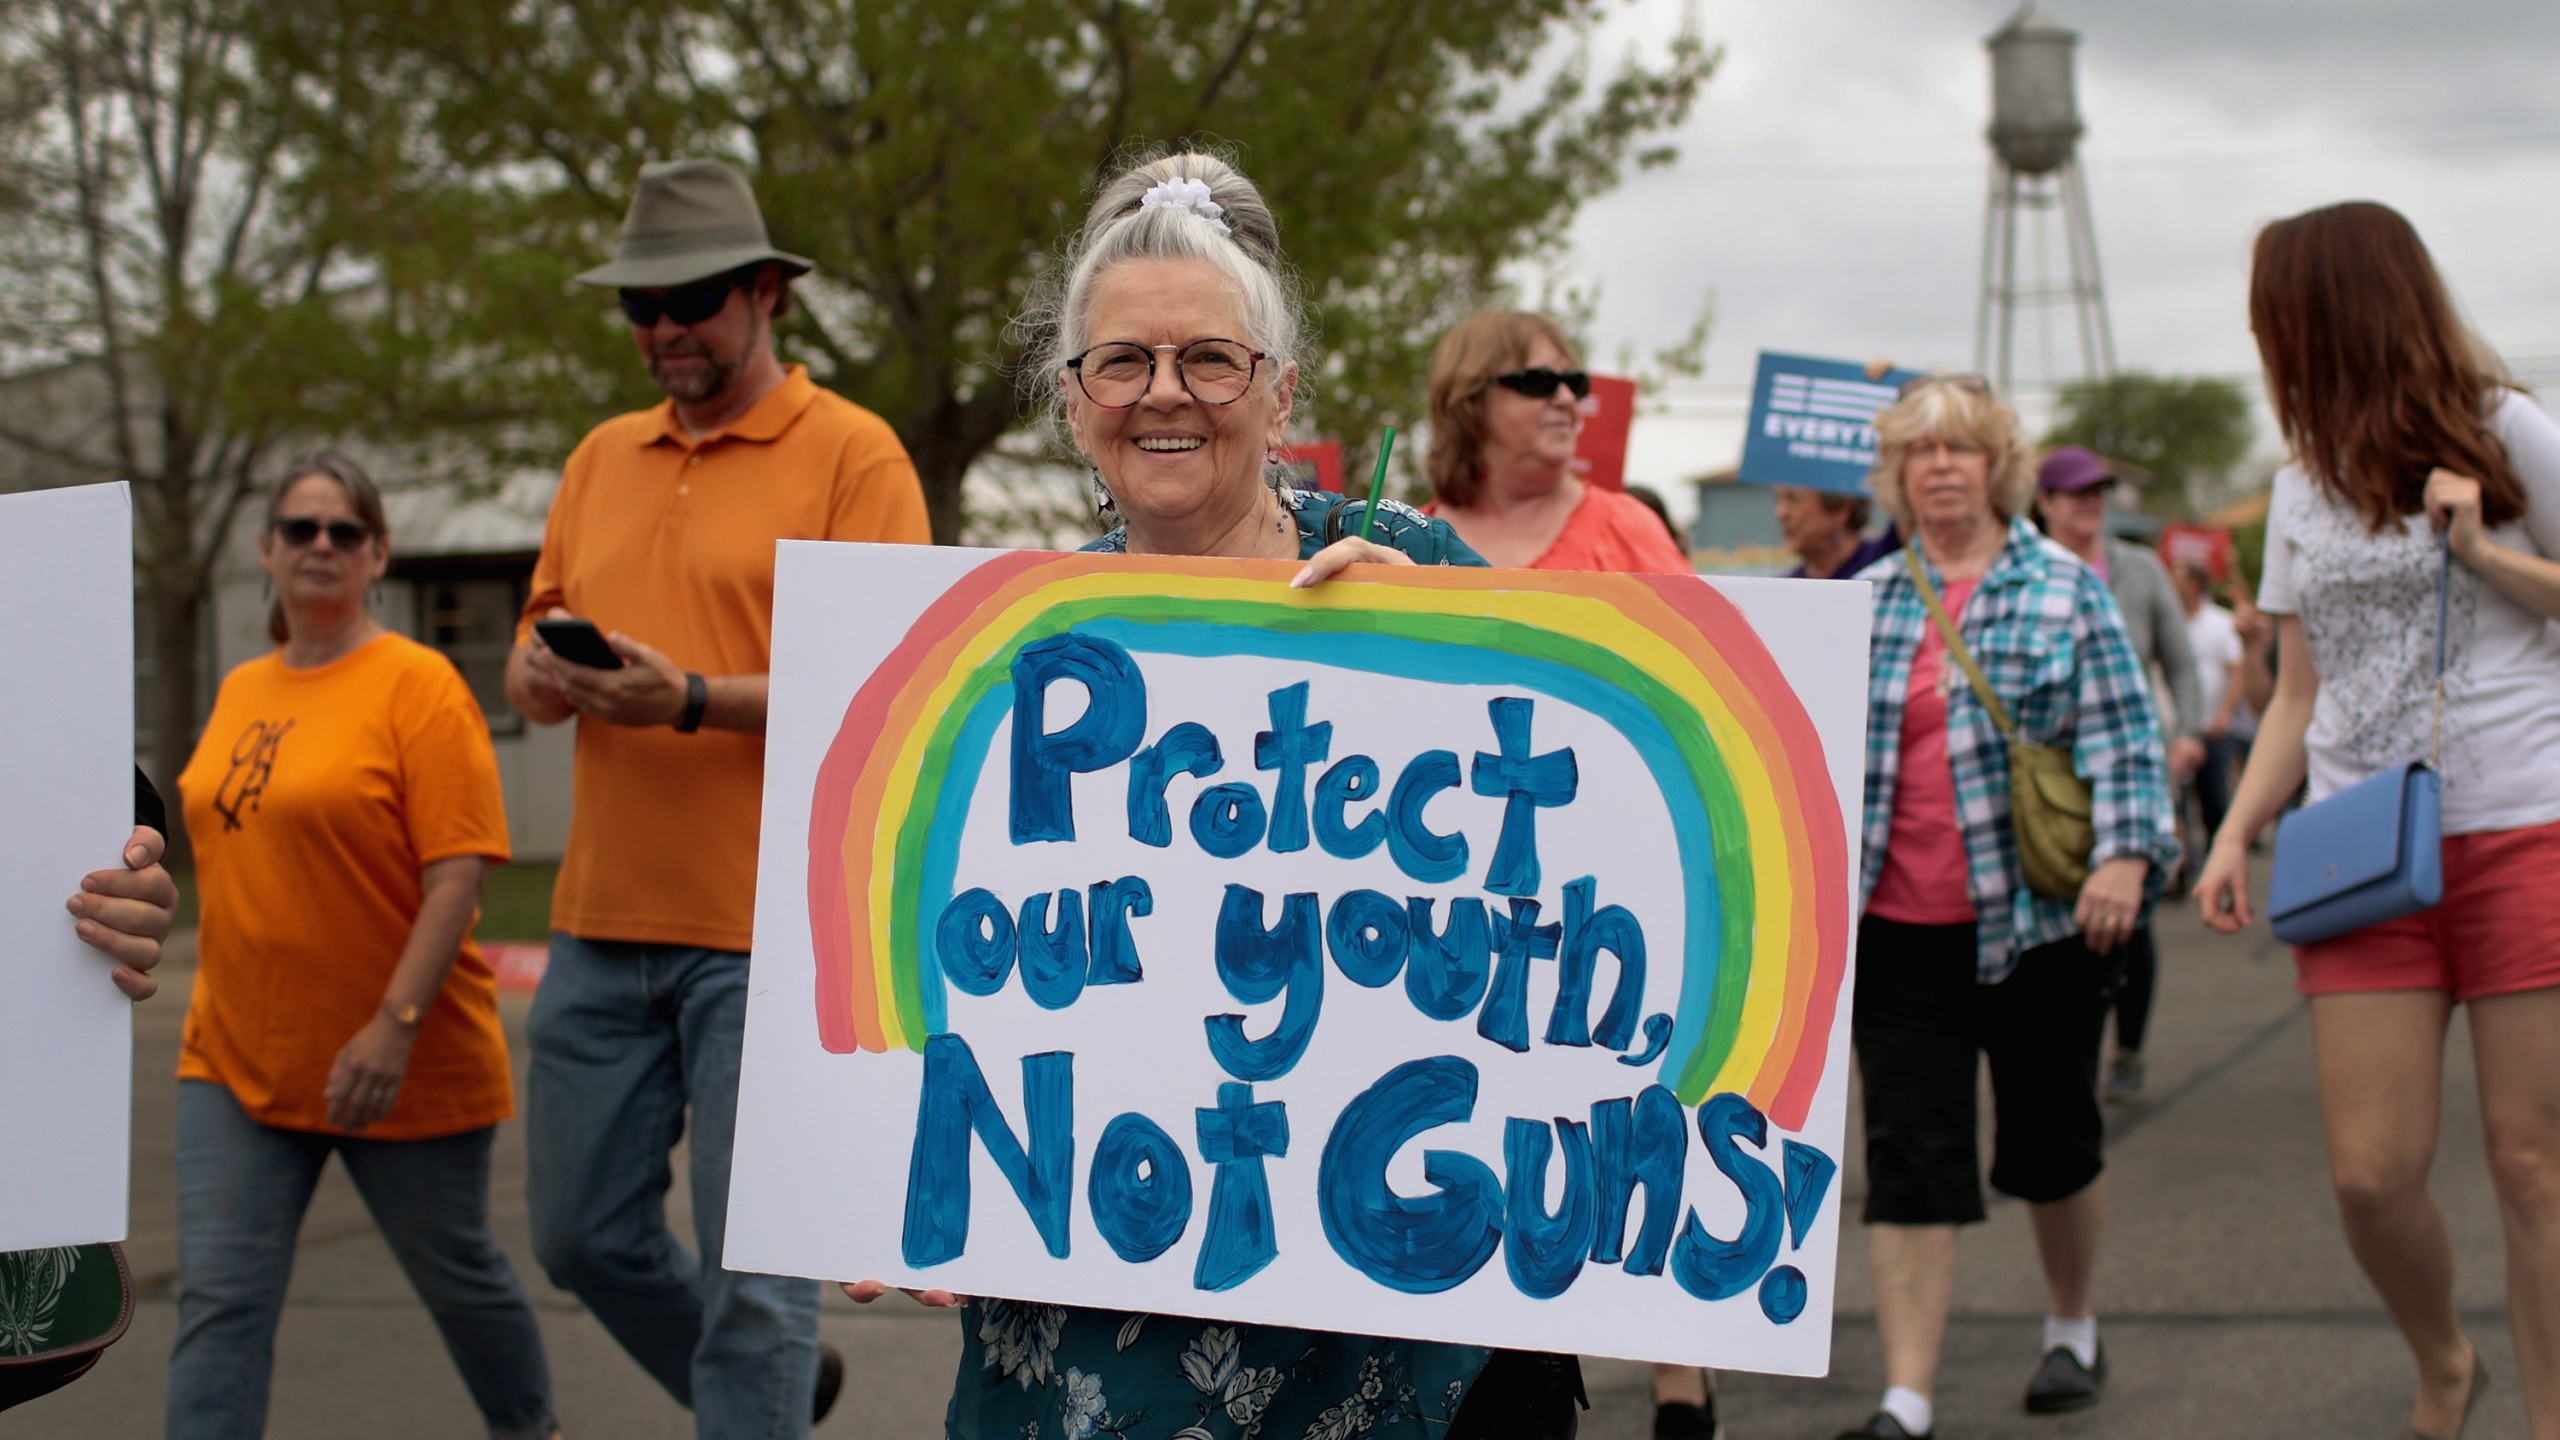 Demonstrators participate in a rally on March 24, 2018 in Round Rock, Texas. (Credit: Scott Olson/Getty Images)